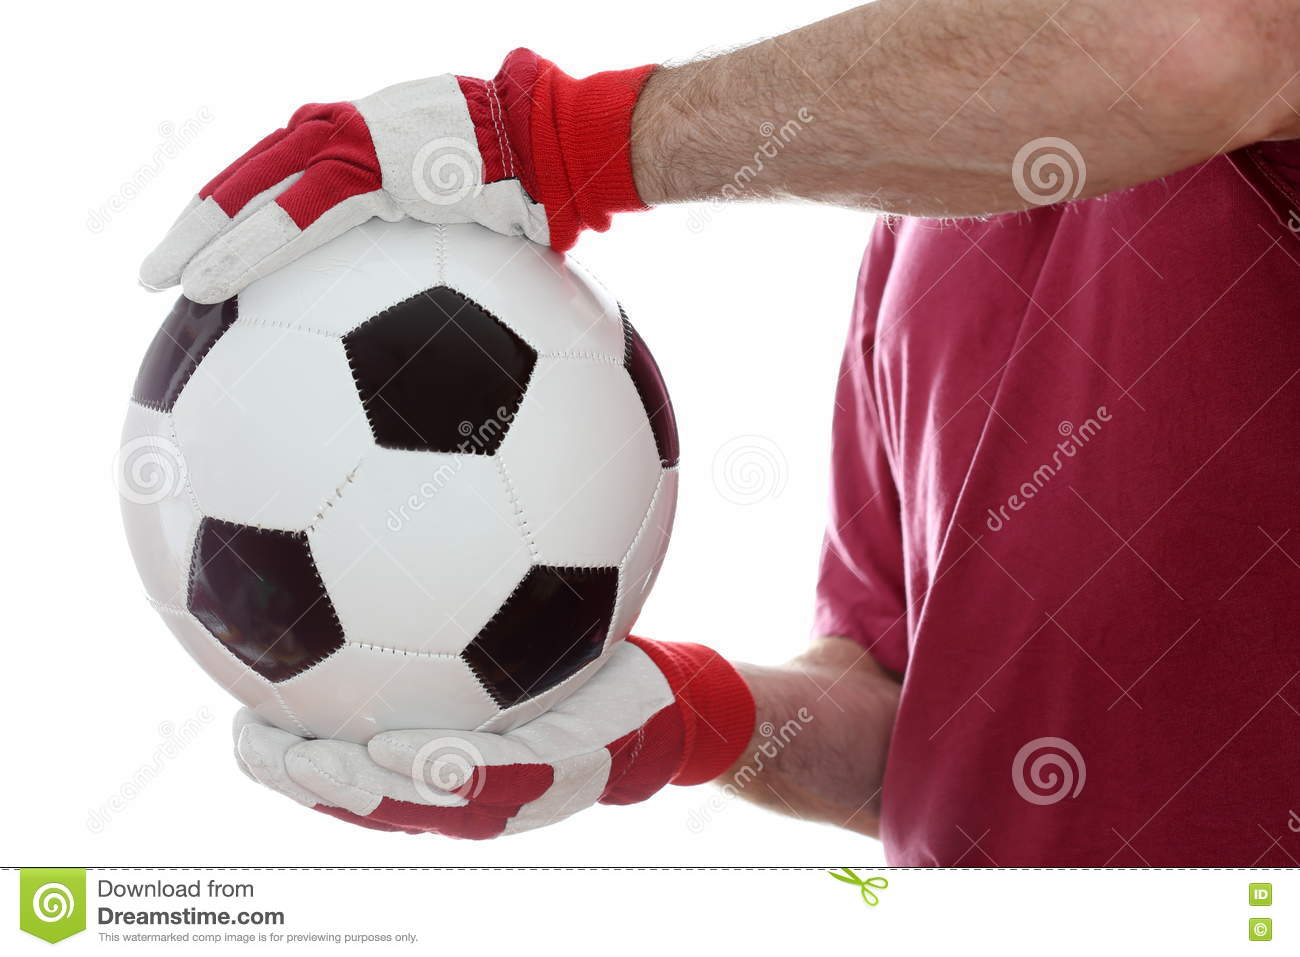 Catching a leather ball